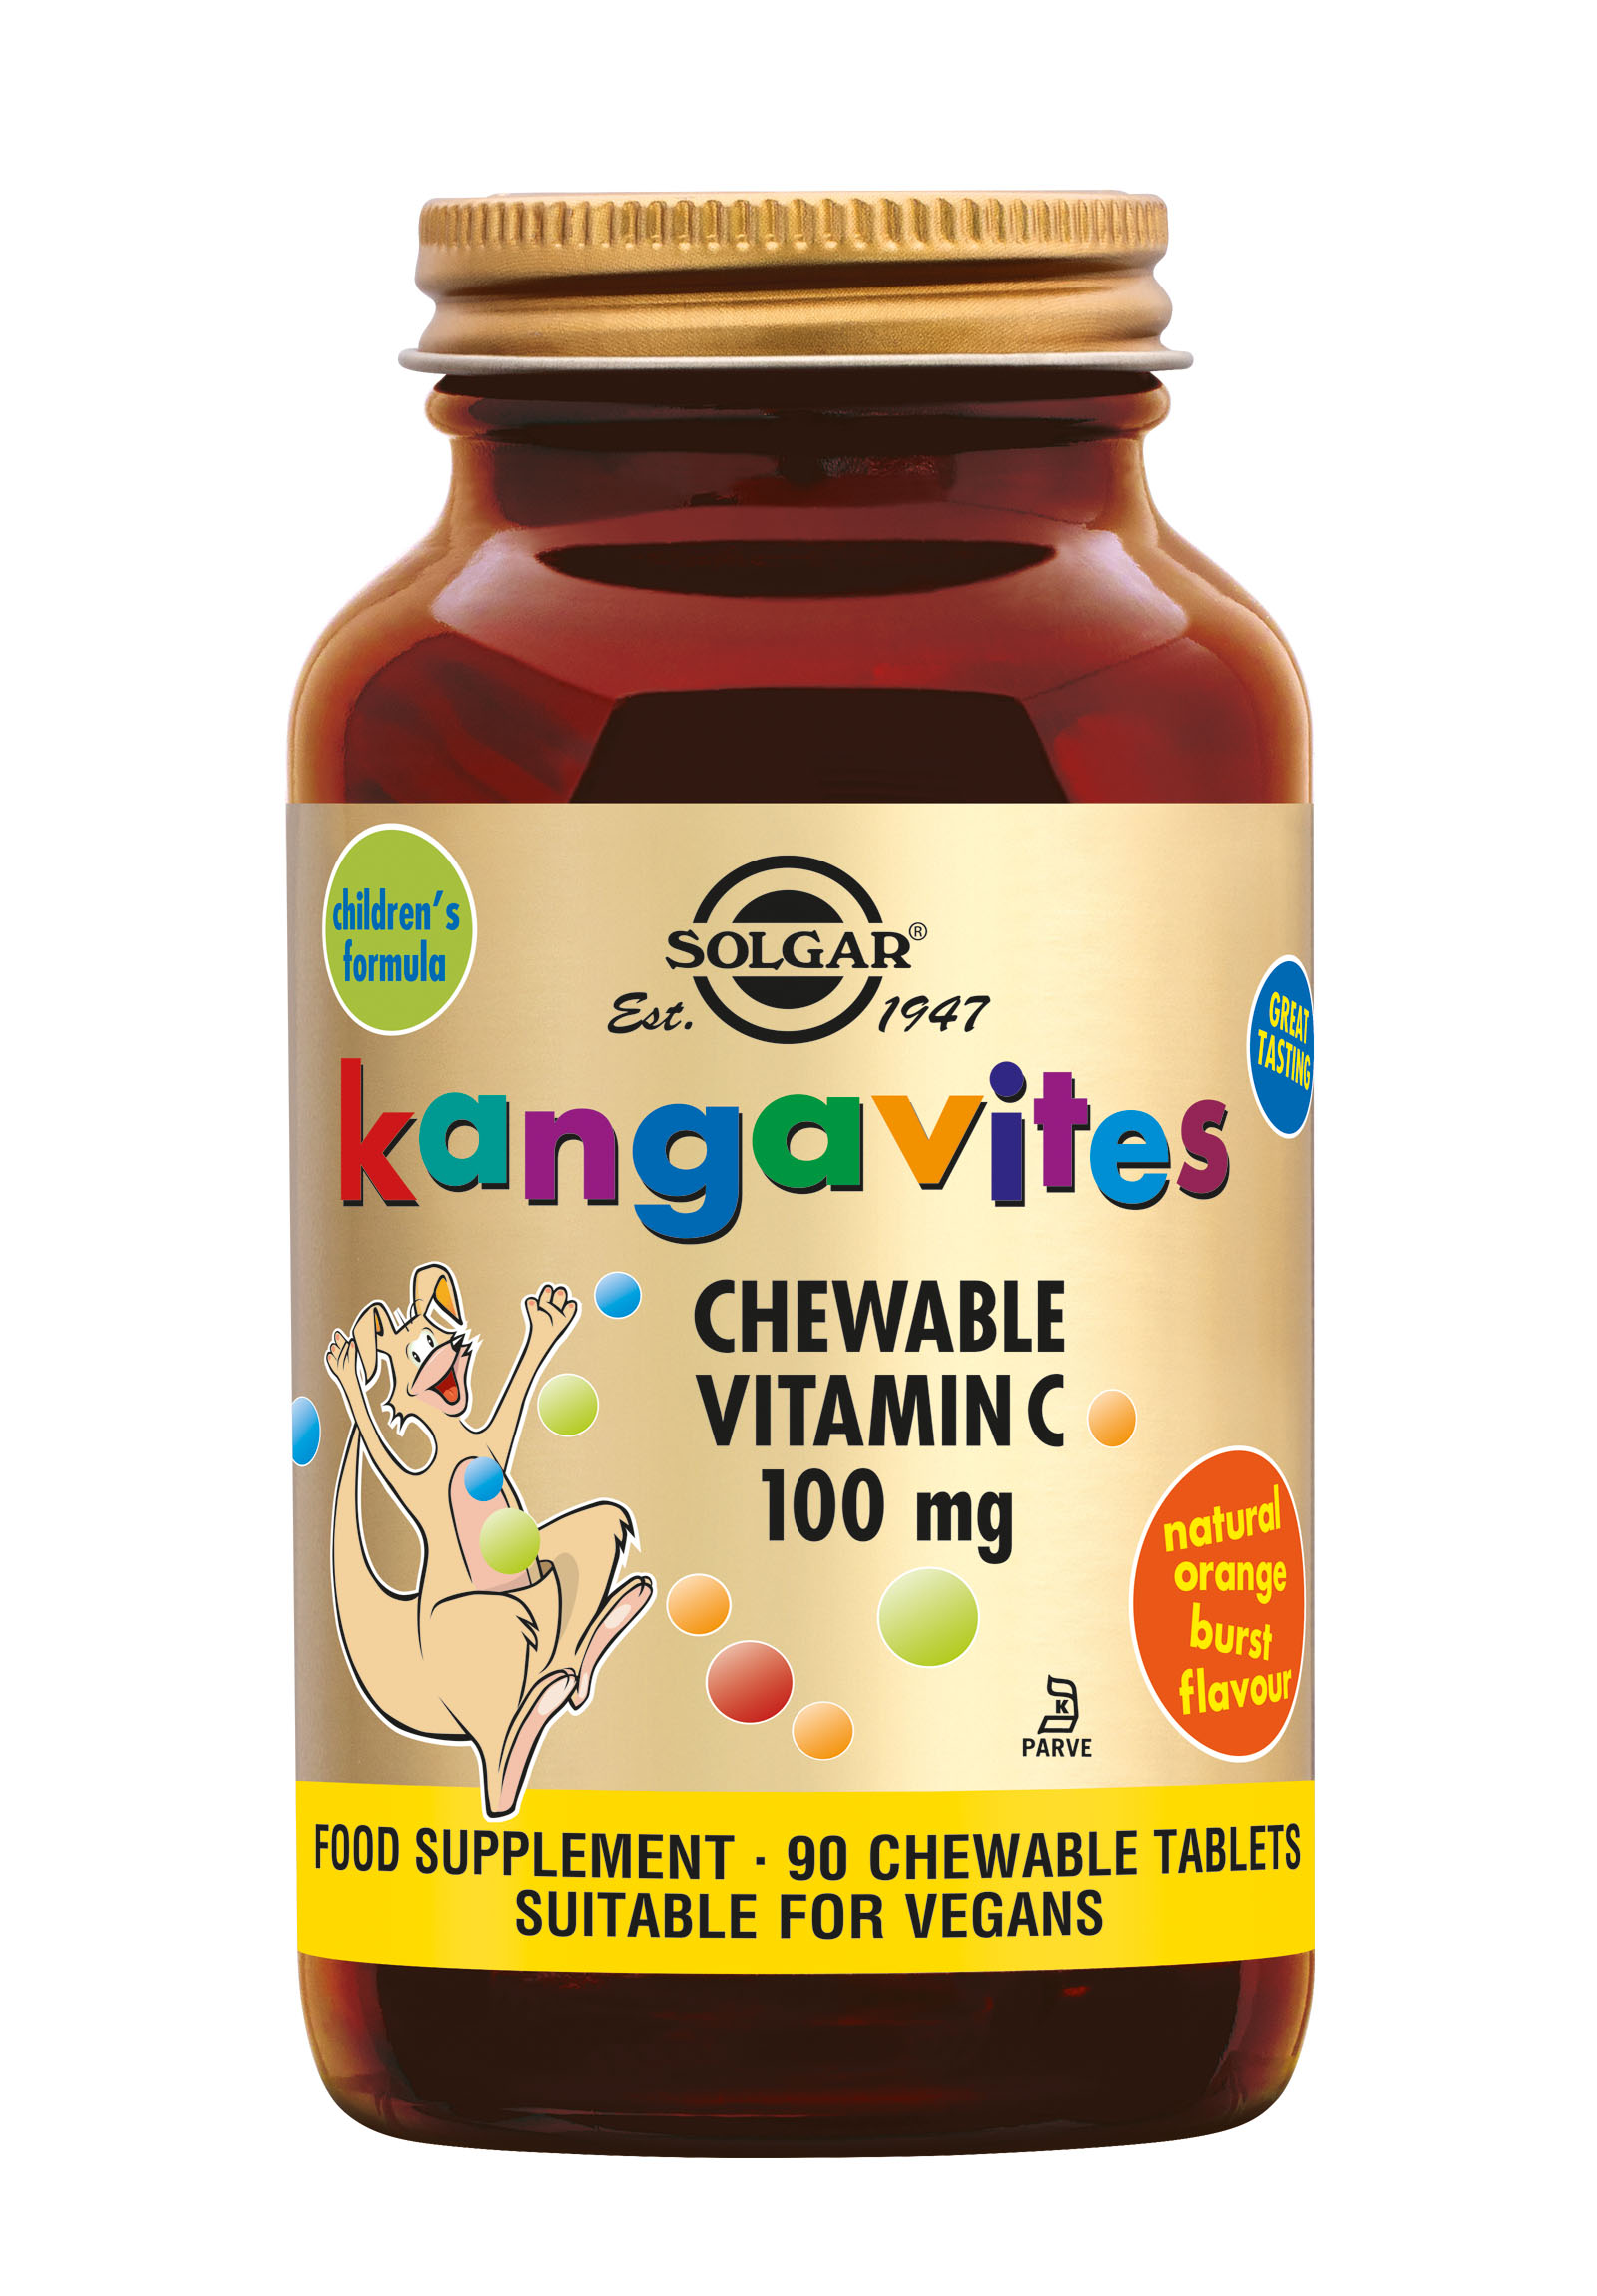 Kangavites Chewable Vitamin C 100 mg